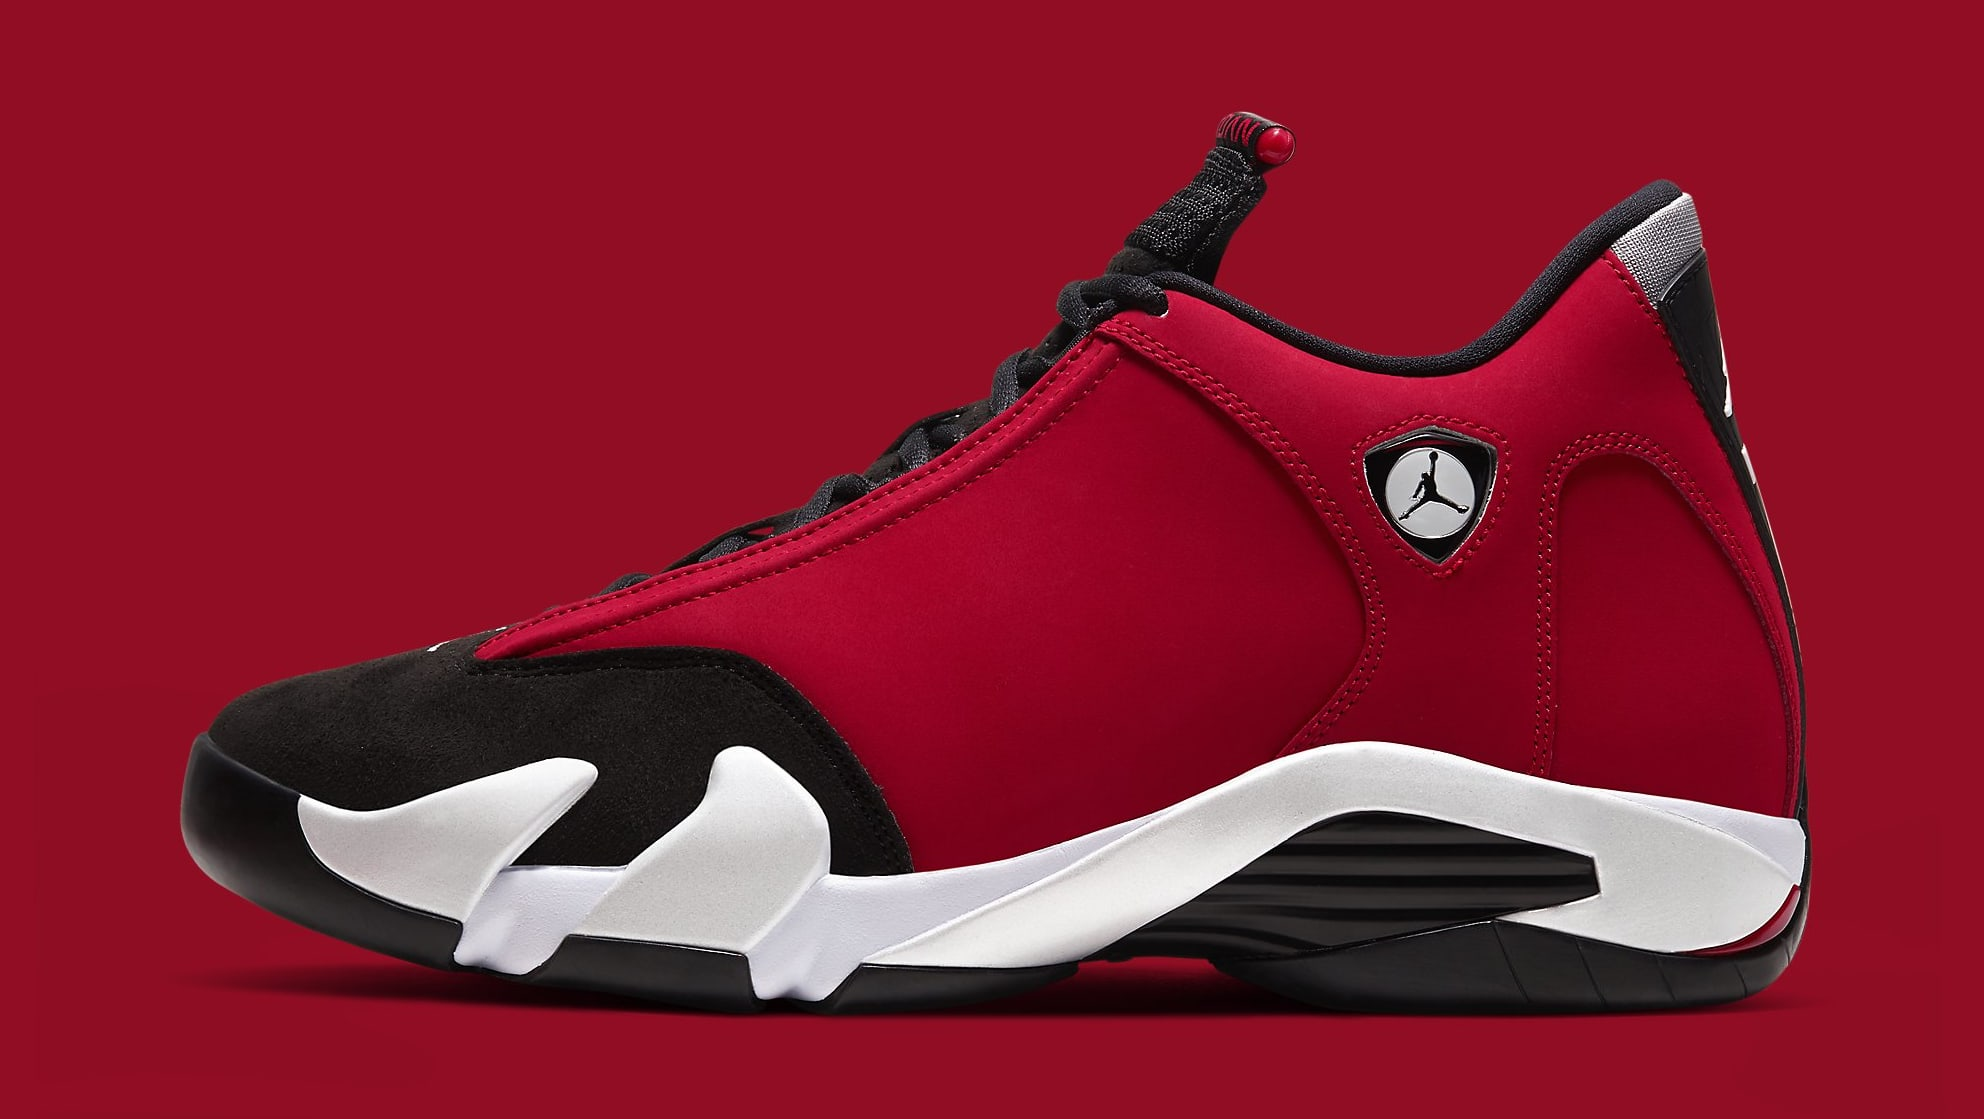 Air Jordan 14 Retro 'Gym Red' 487471-006 Lateral